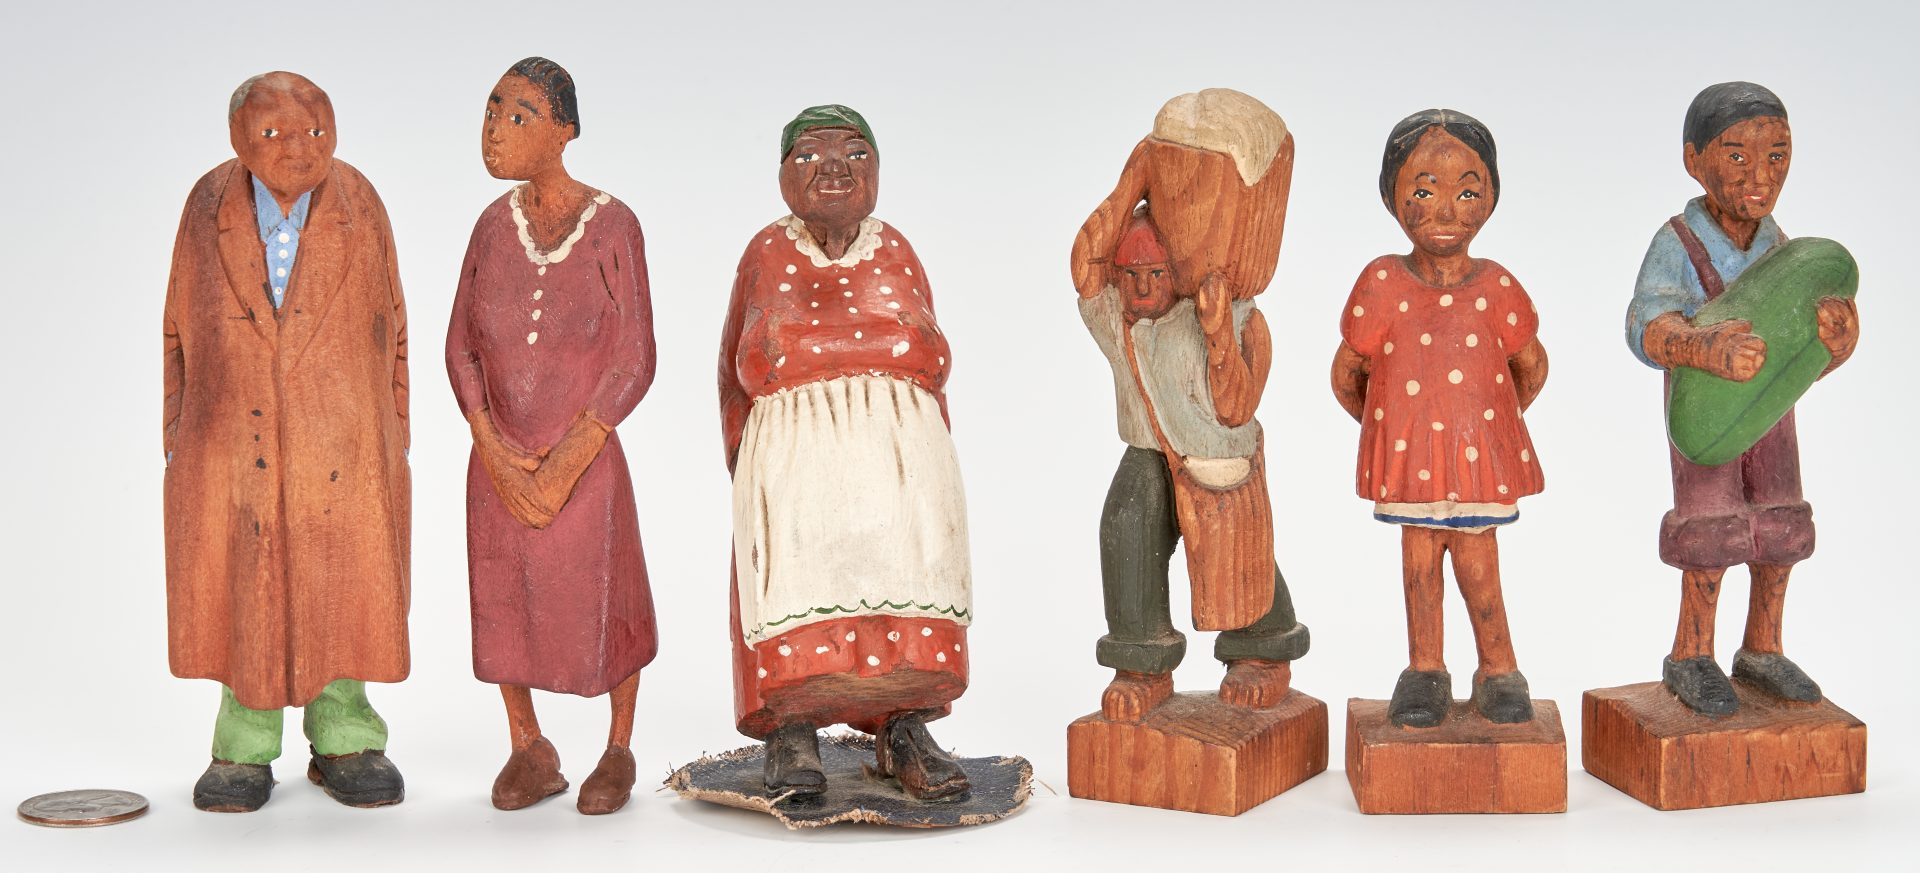 Tom Brown folk art carved and painted figures